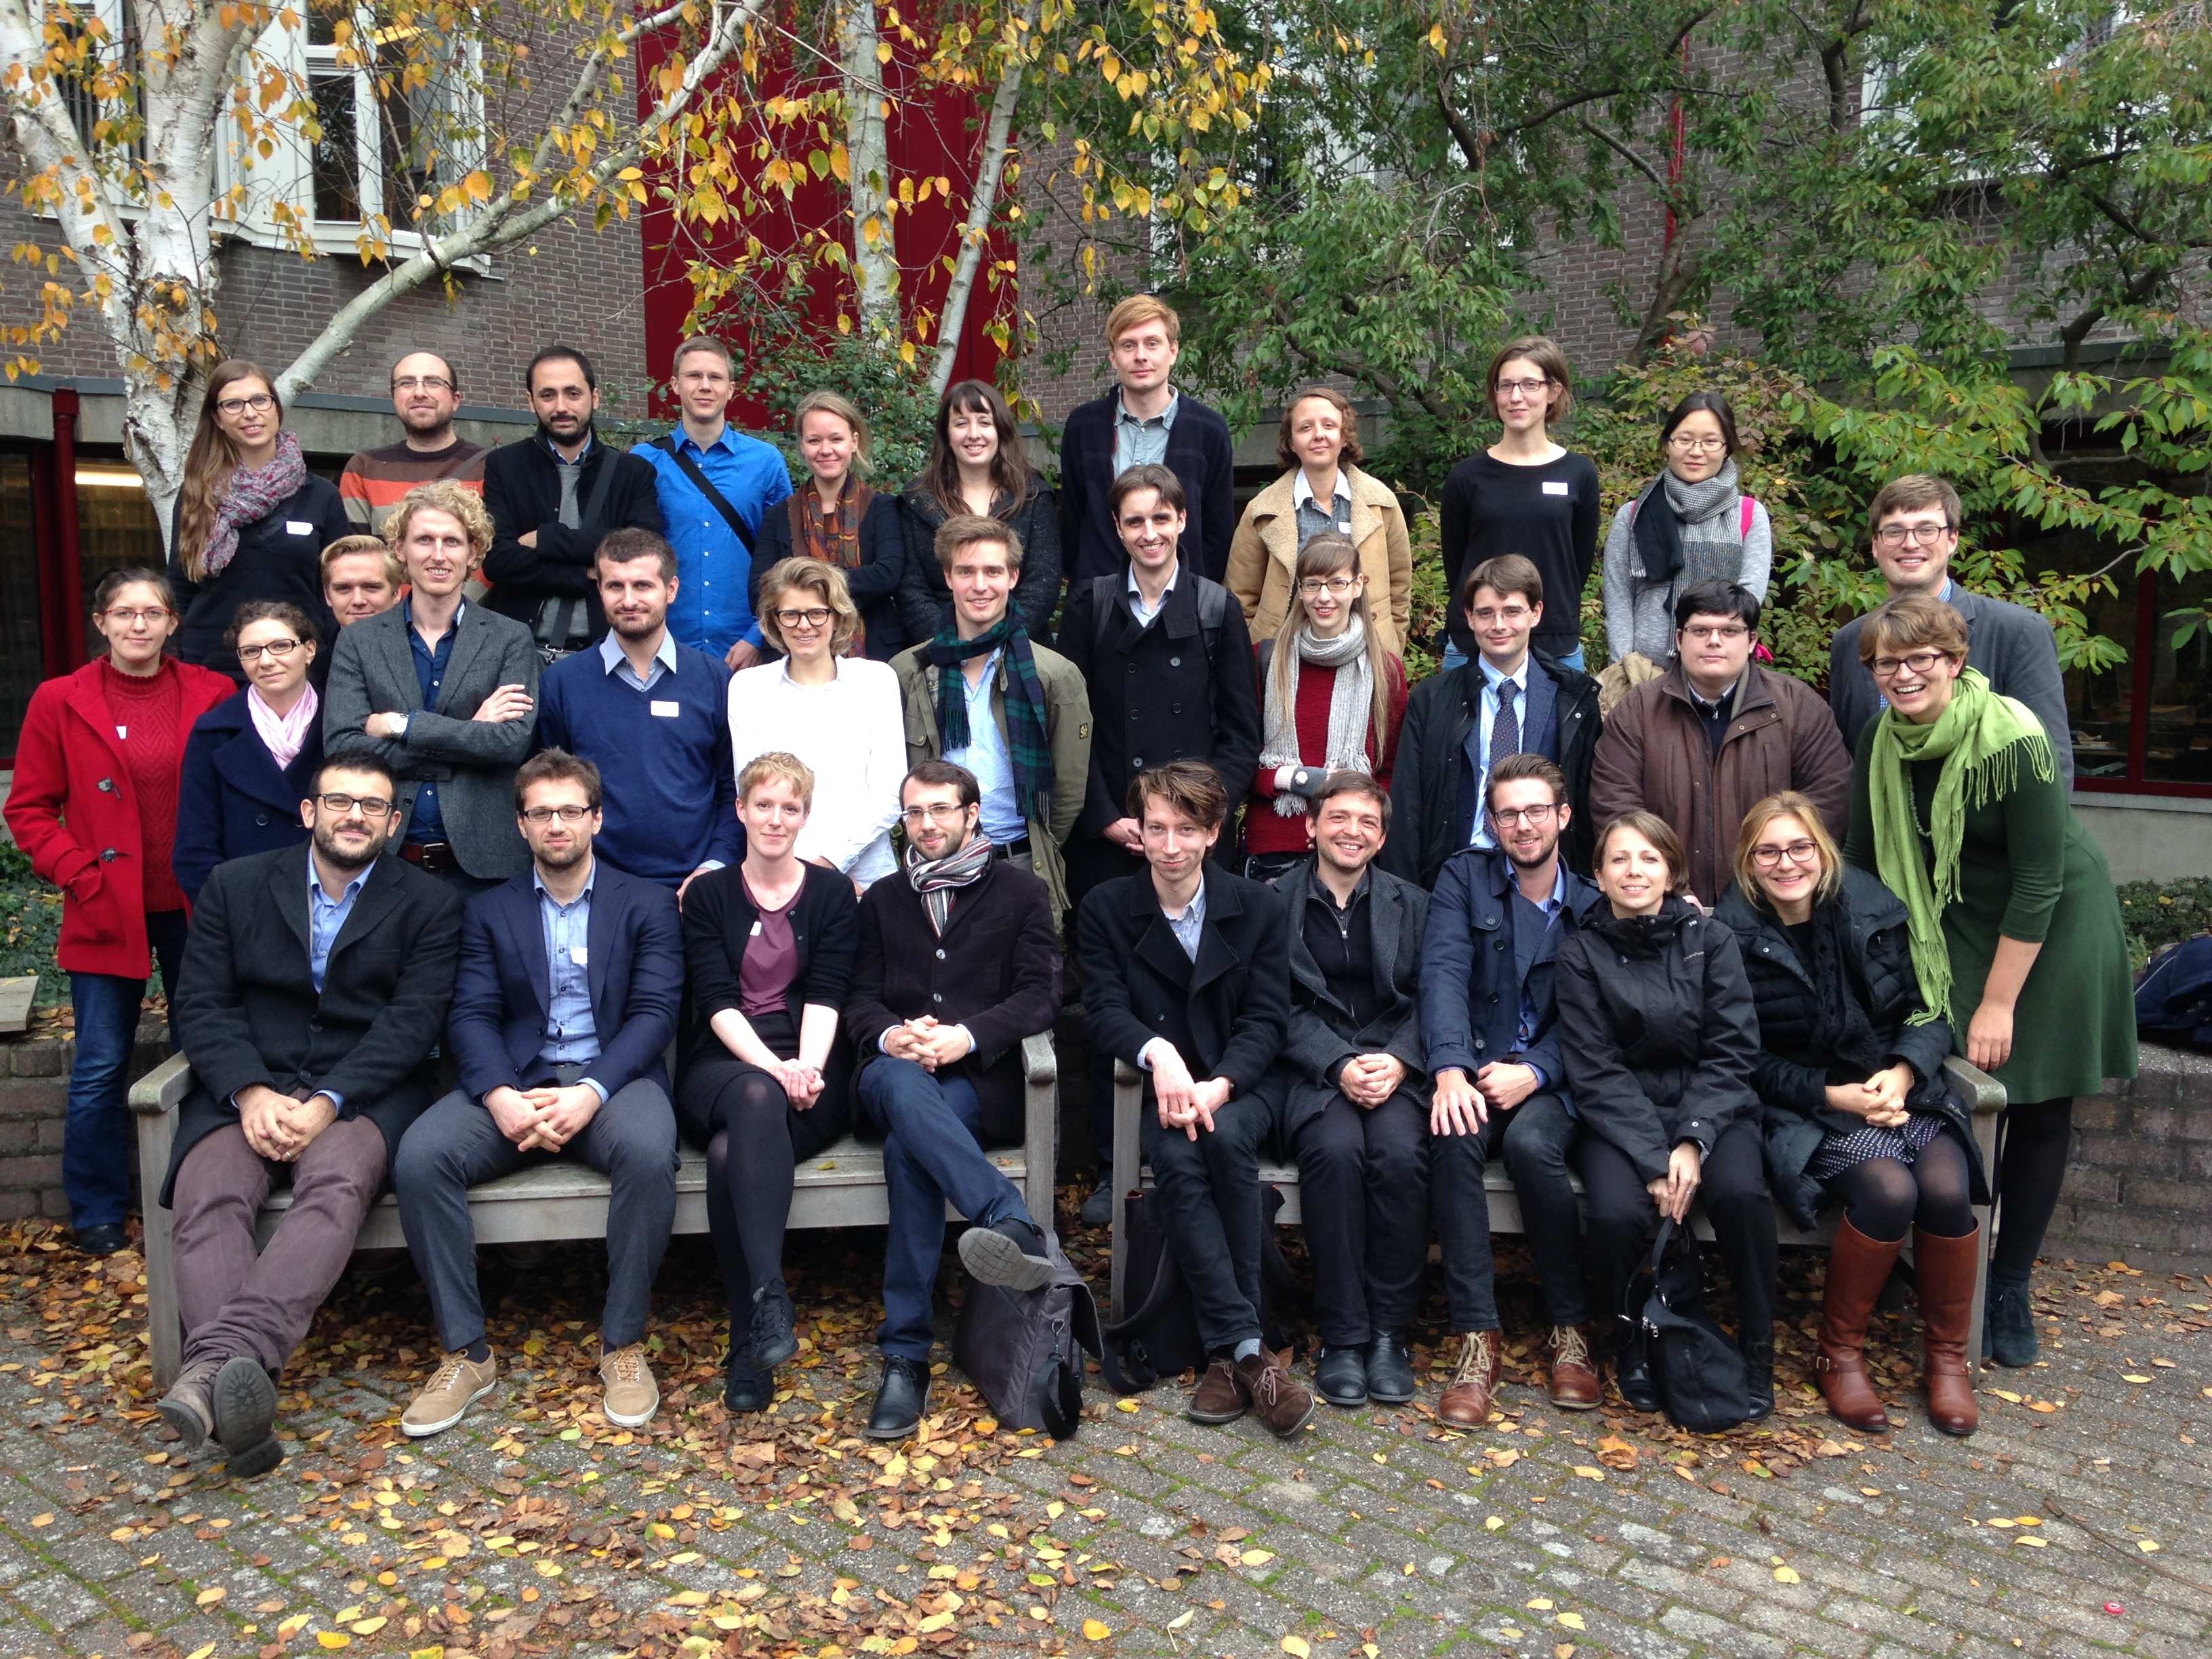 Participants of the PHPN Workshop 2015 – 22 & 23 October 2015, Leiden University, the Netherlands